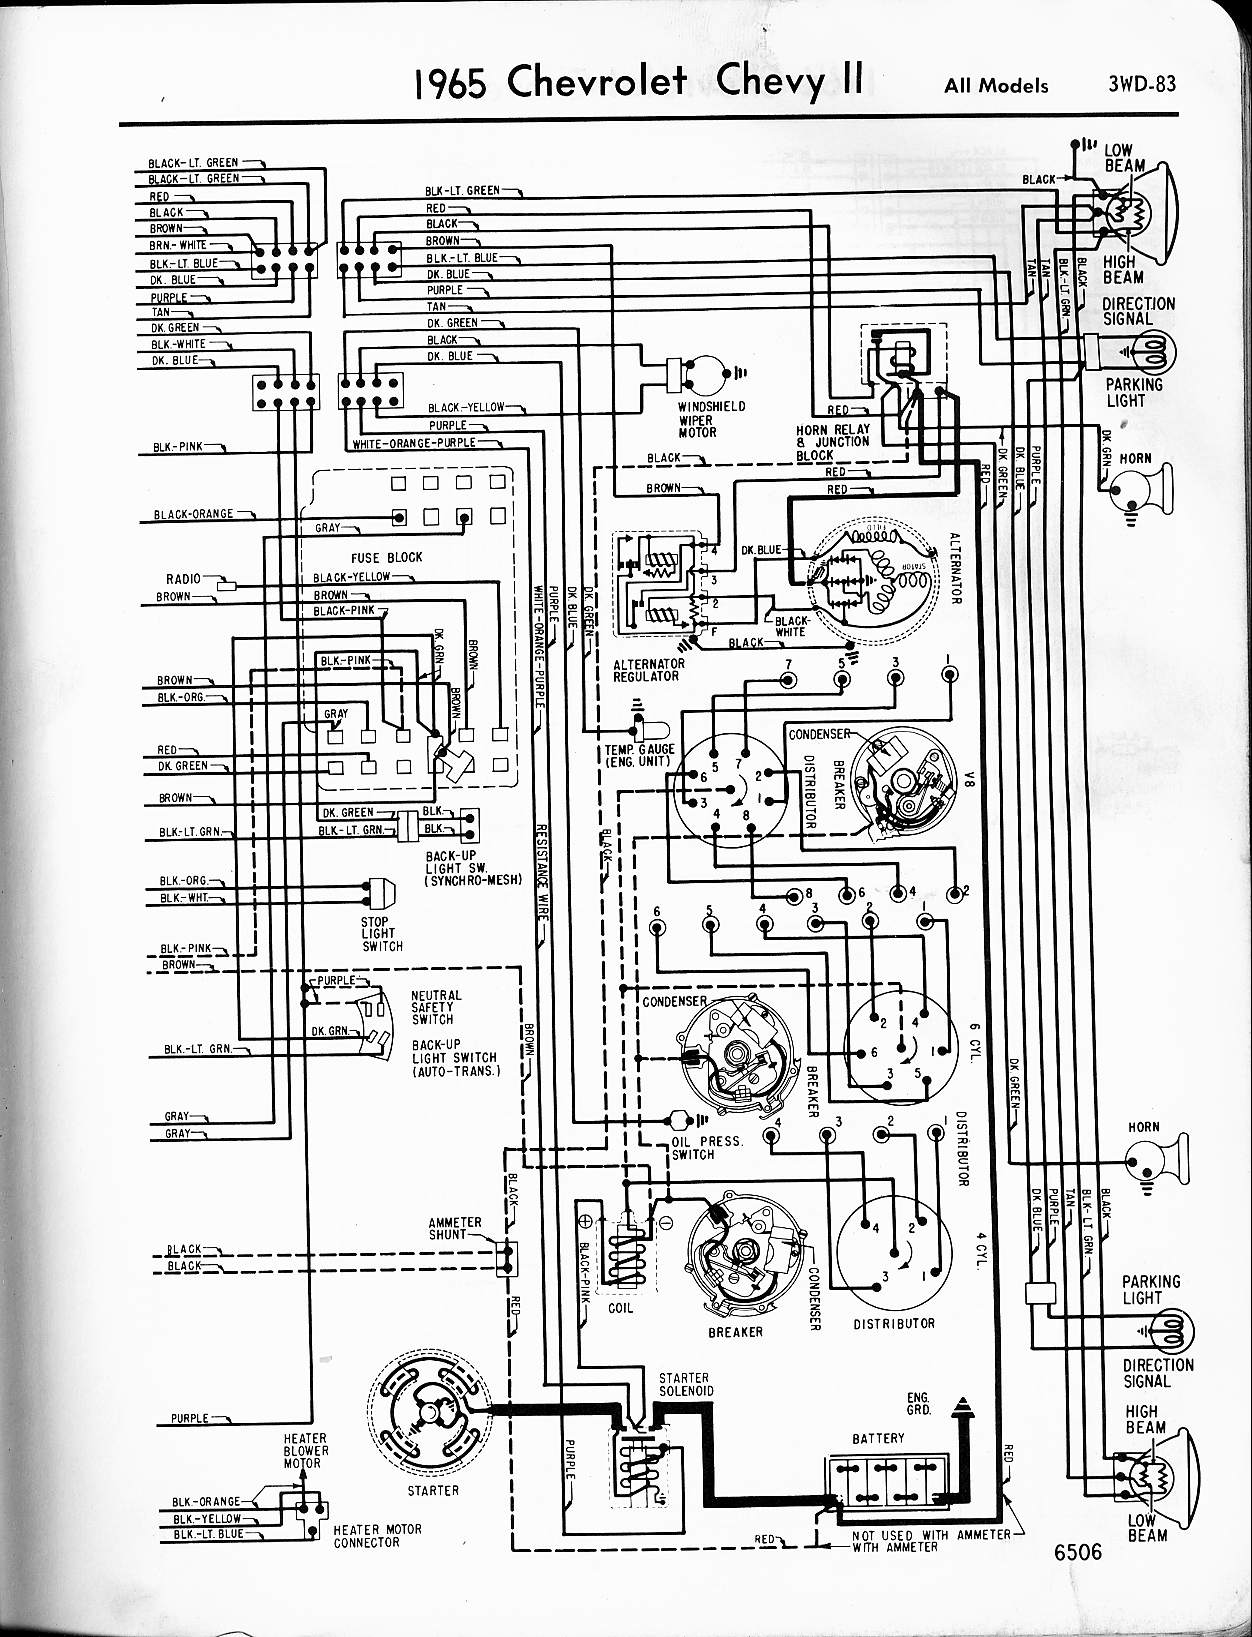 chevy diagrams 1969 chevy truck wiring diagram 1965 chevy ii wiring diagram figure a figure b